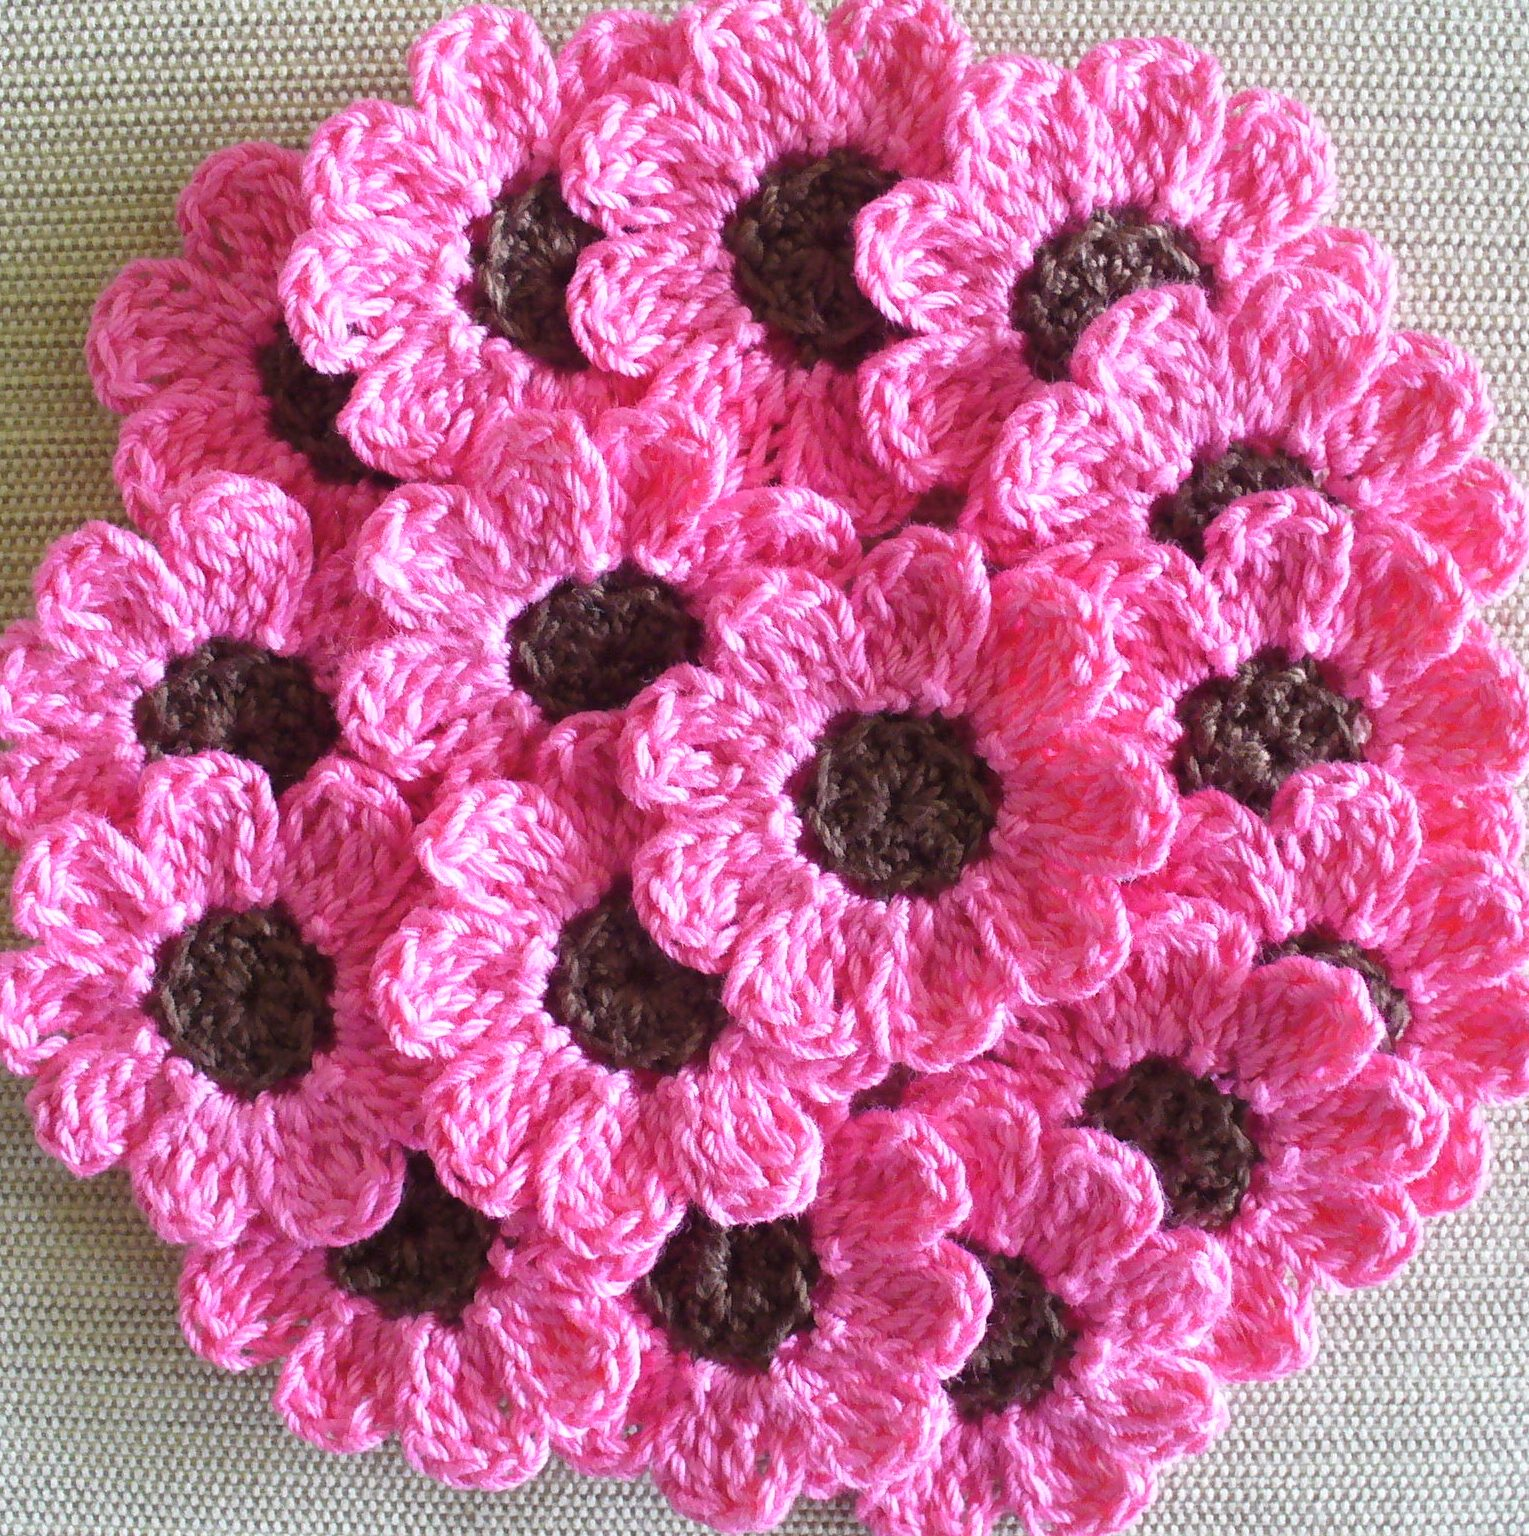 Crochet Patterns Of Flowers : Pink Crochet Flowers, Daisies, 16 Small Handmade Appliques, Candy Pink ...